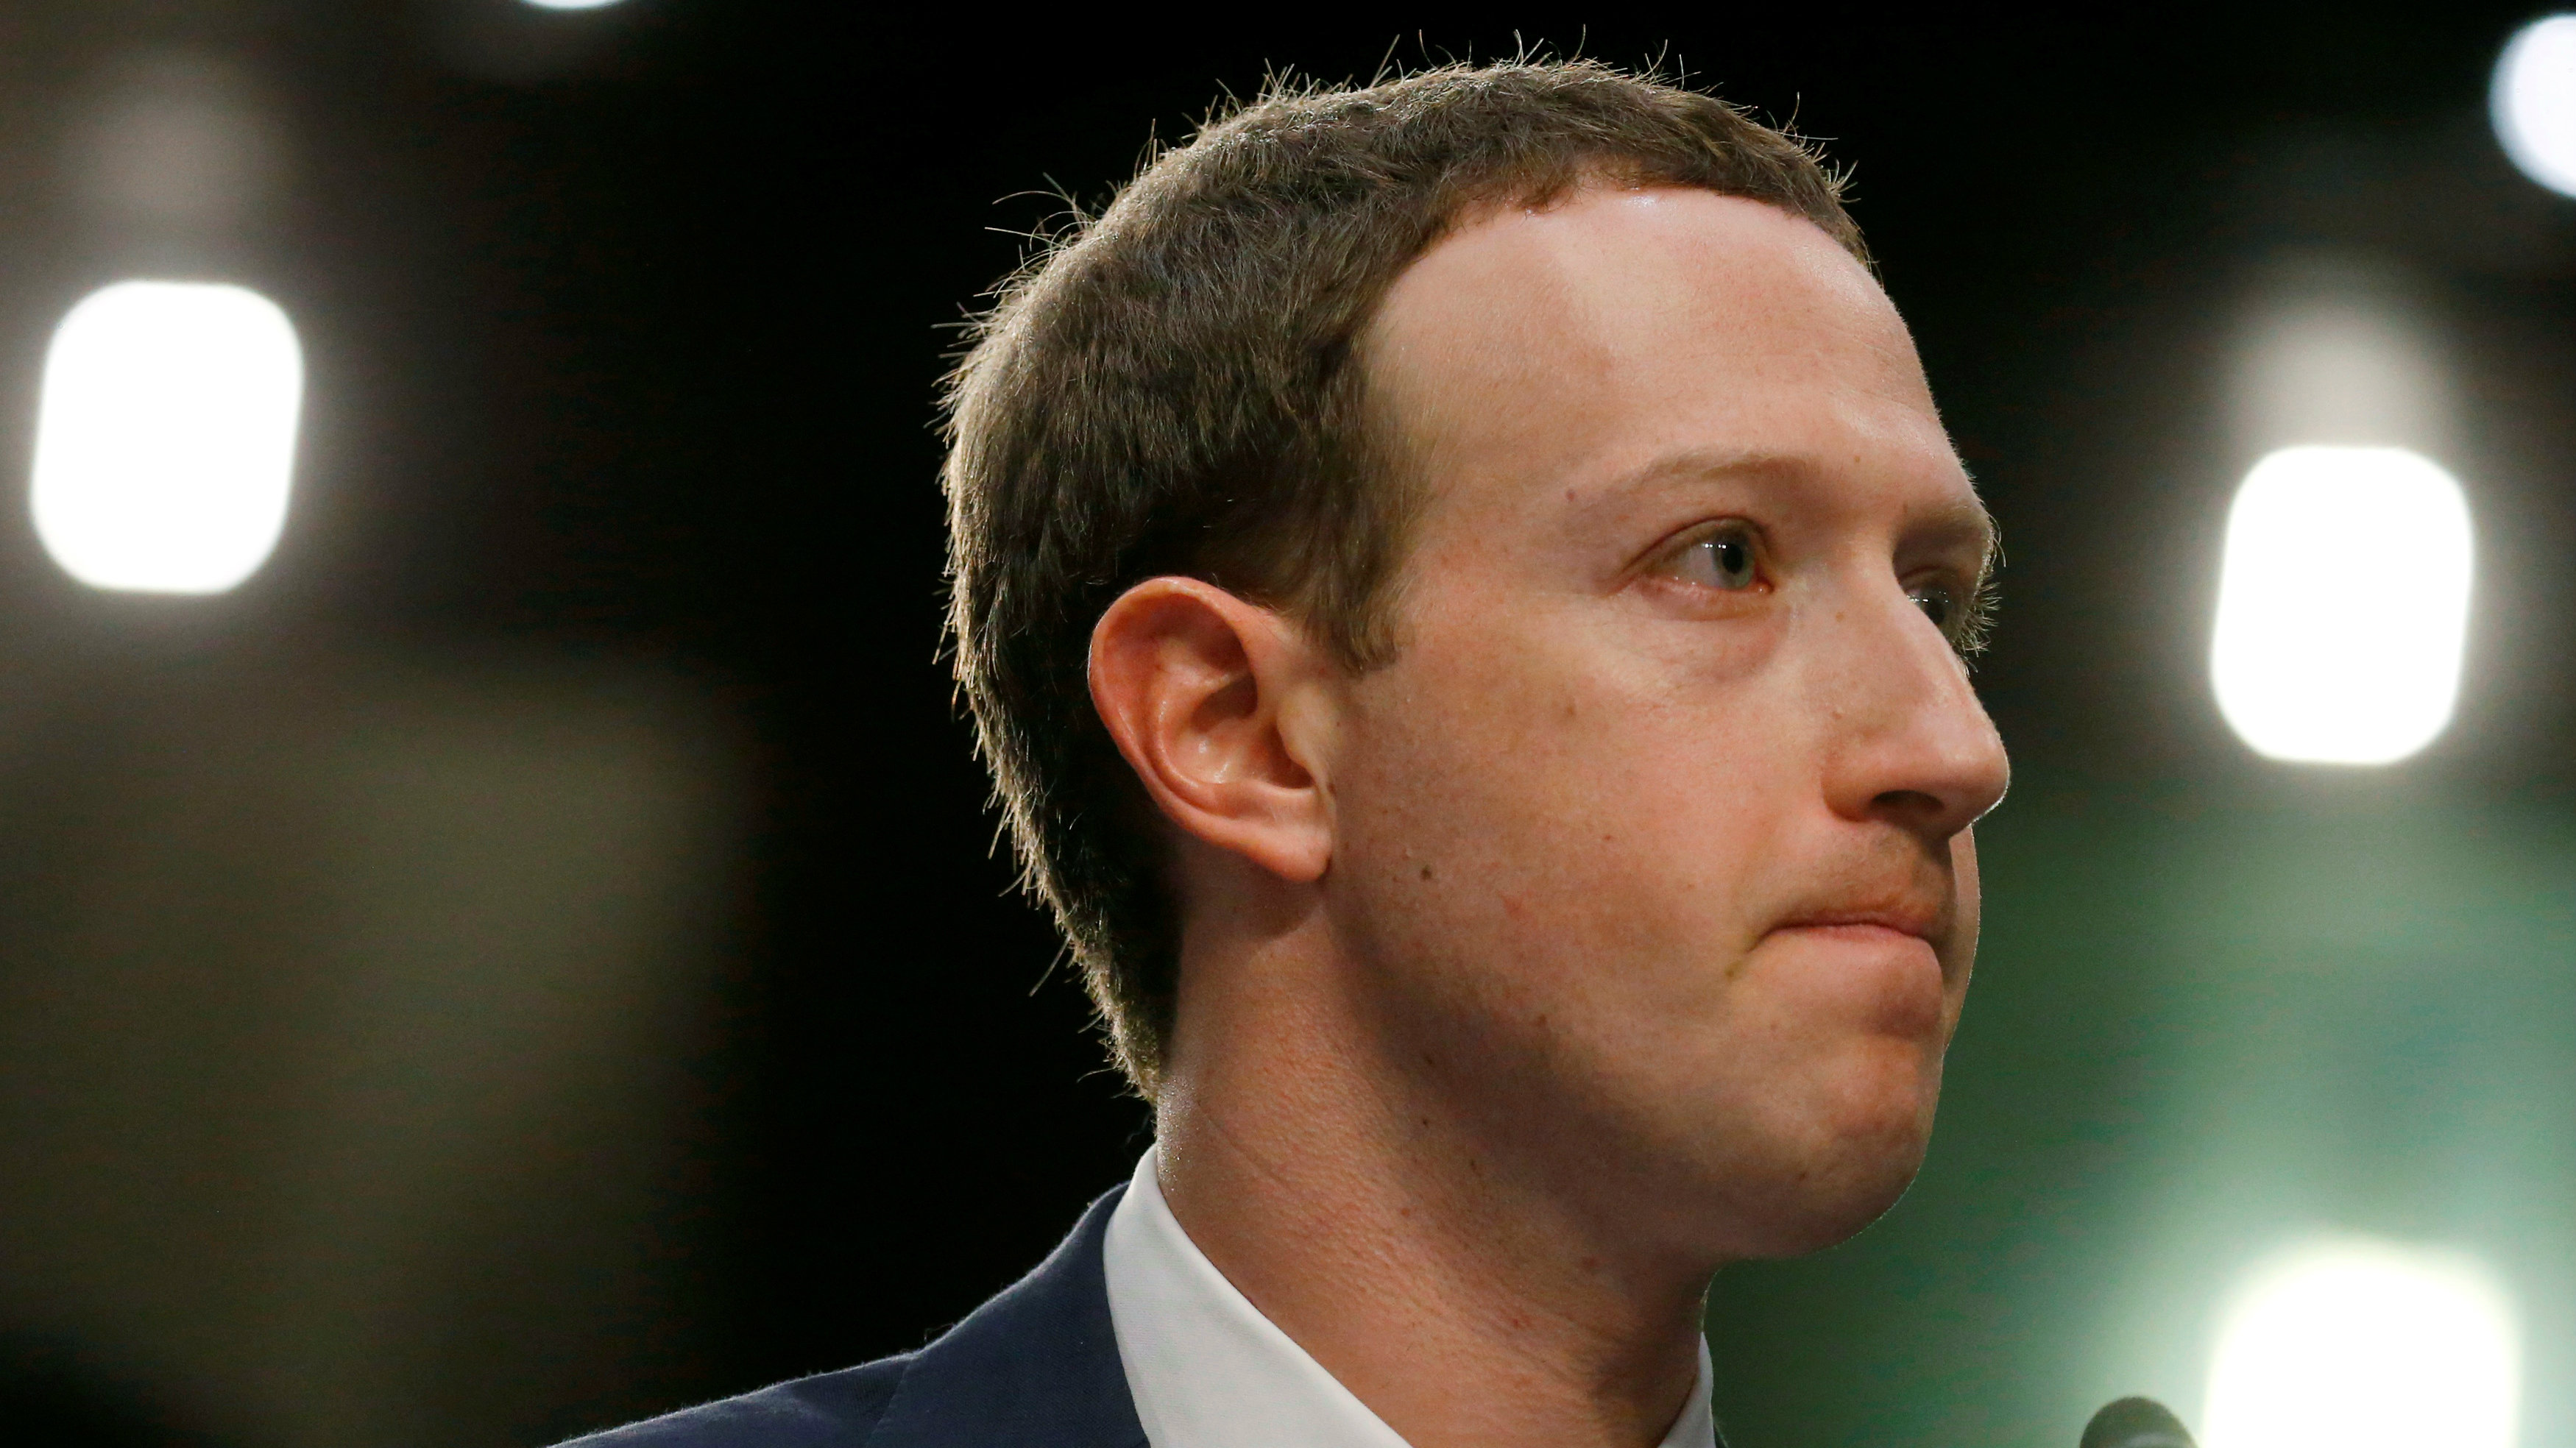 Facebook CEO Mark Zuckerberg listens while testifying before a joint Senate Judiciary and Commerce Committees hearing regarding the company's use and protection of user data, on Capitol Hill in Washington, U.S